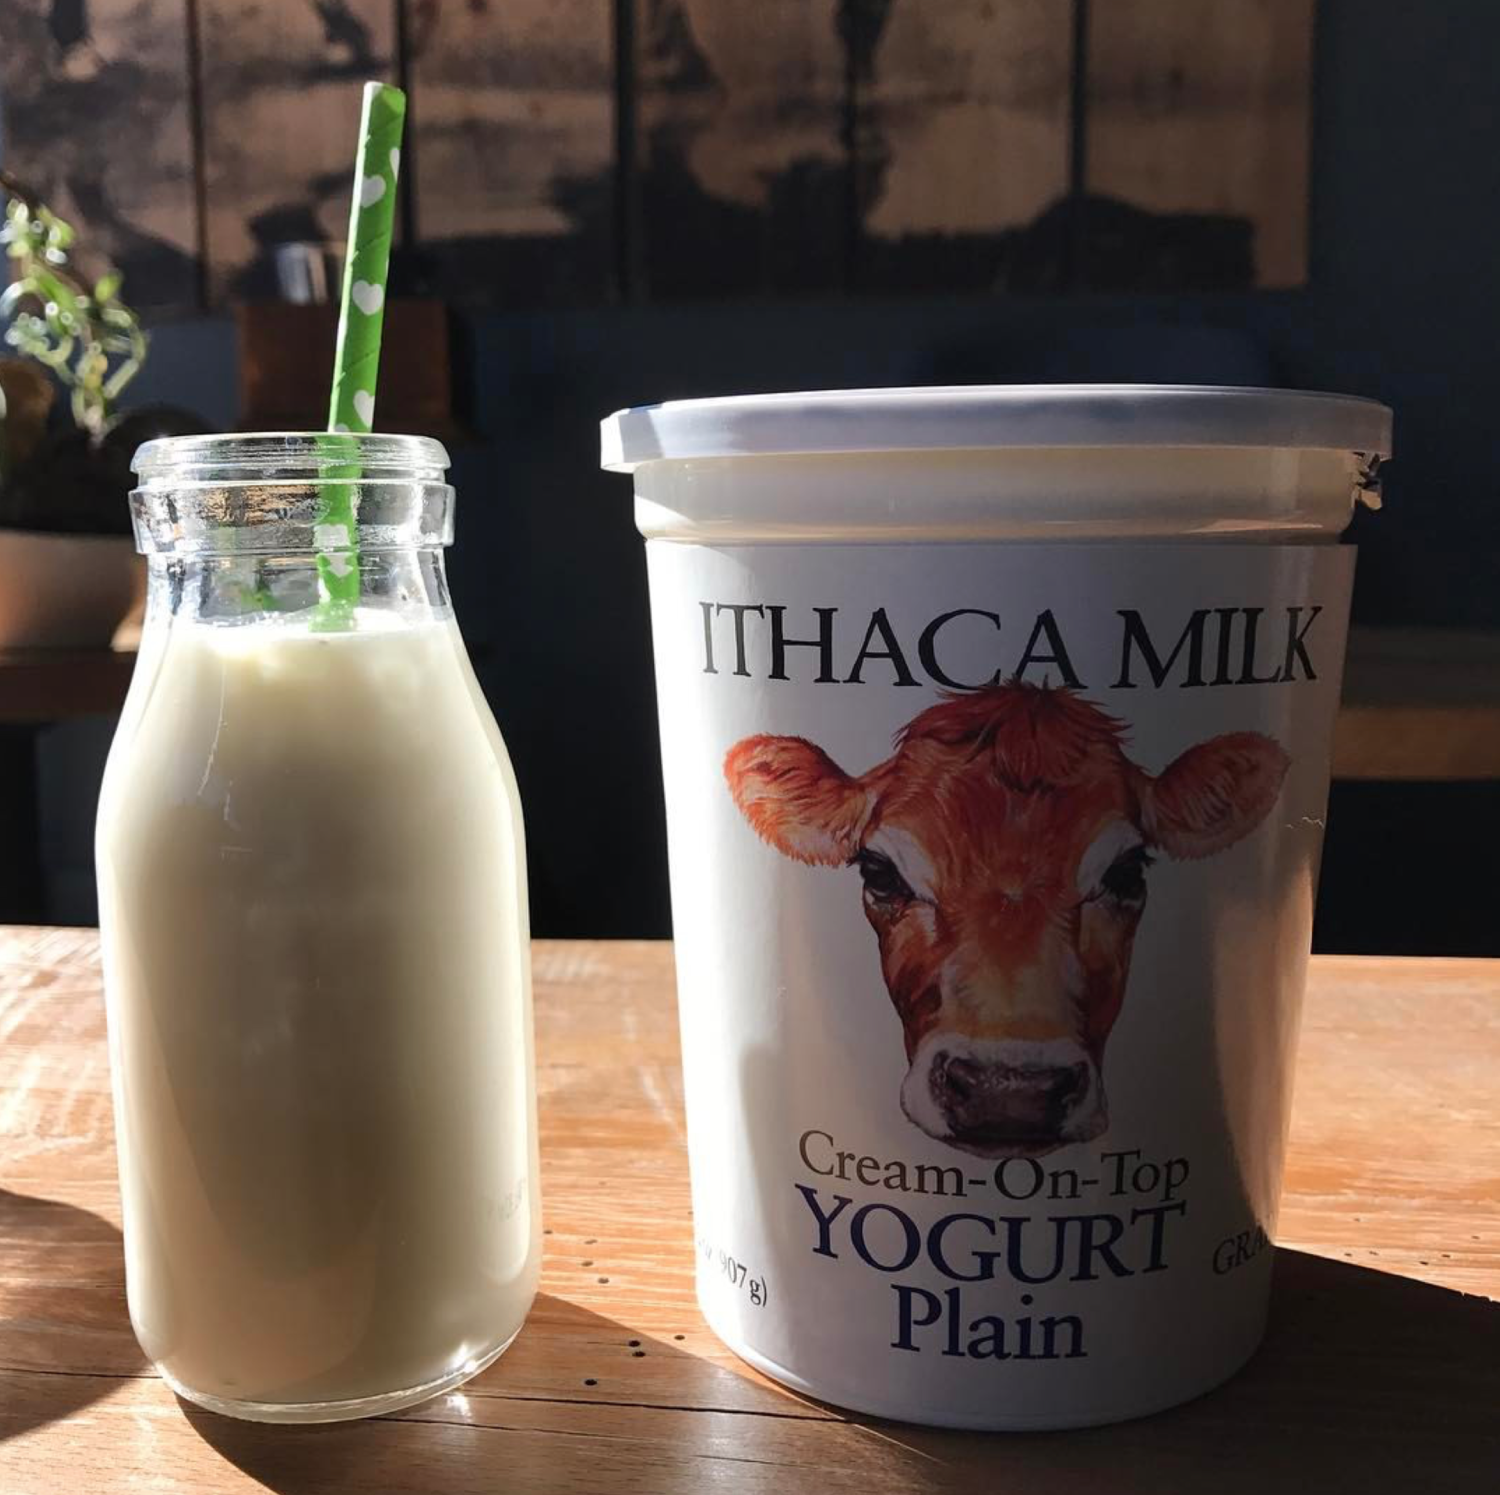 ITHACA MILK Vanilla Yogurt 32 oz